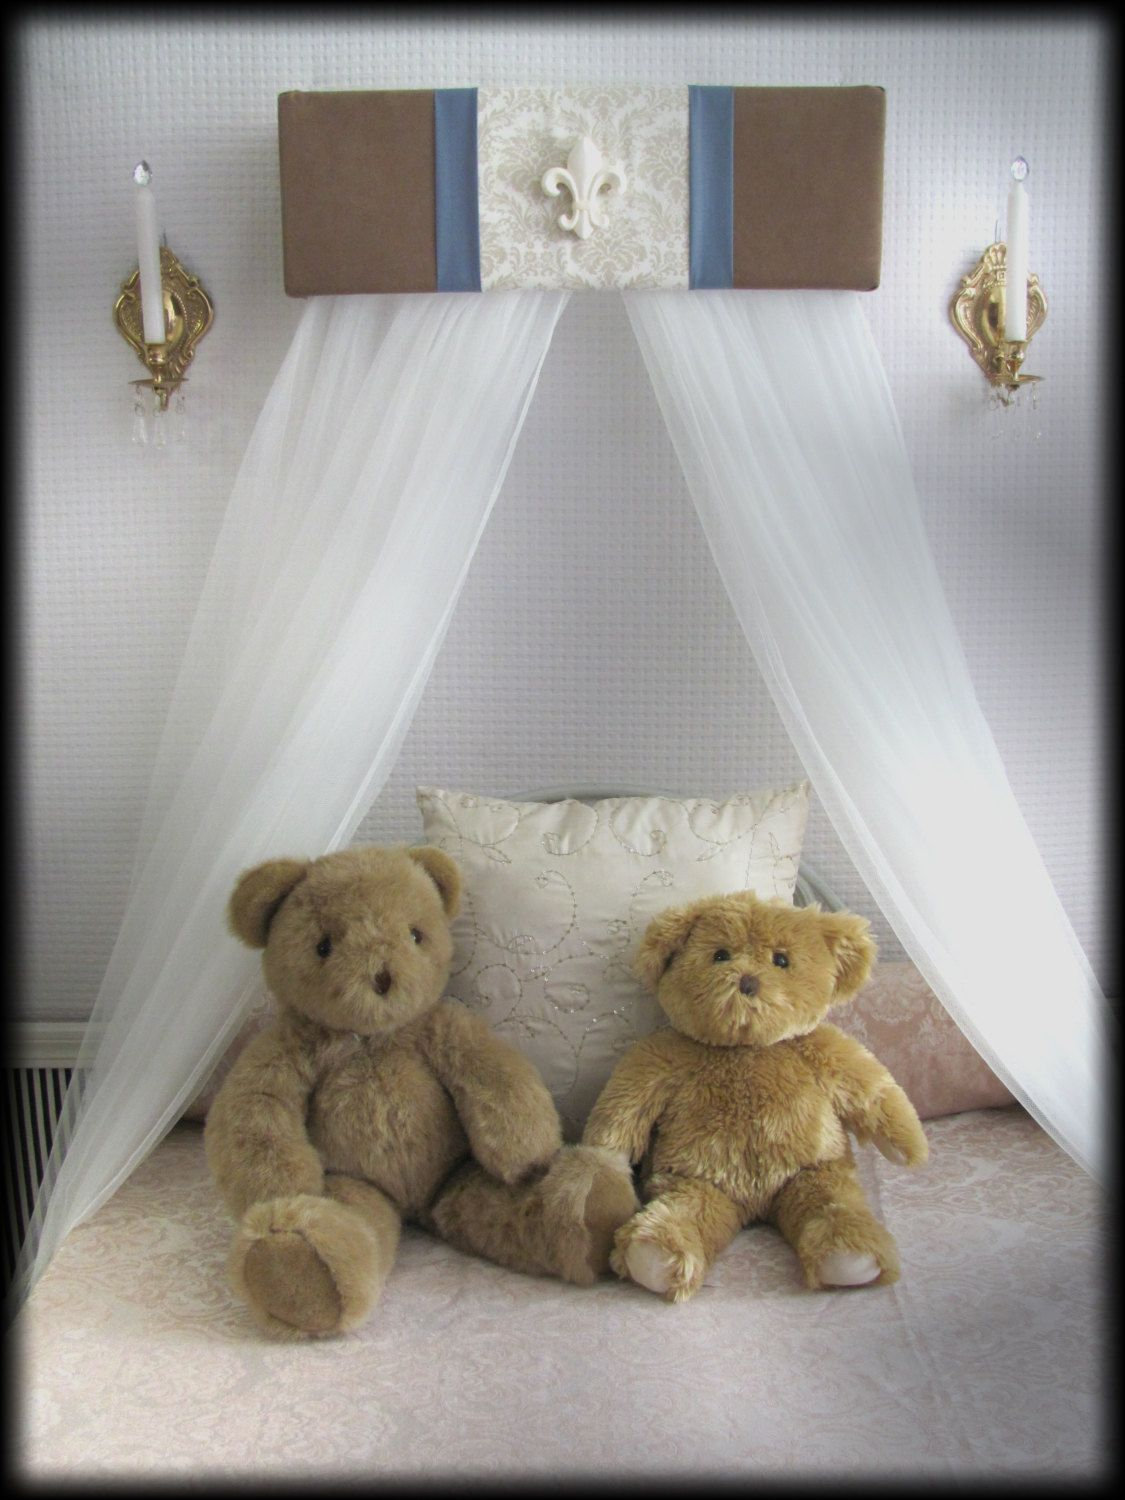 Boys Nursery crib bedroom Tan blue Damask canopy Cornice PRINCE Upholstered SALE by SoZoeyBoutique on Etsy & Boys Nursery crib bedroom Tan blue Damask canopy Cornice PRINCE ...